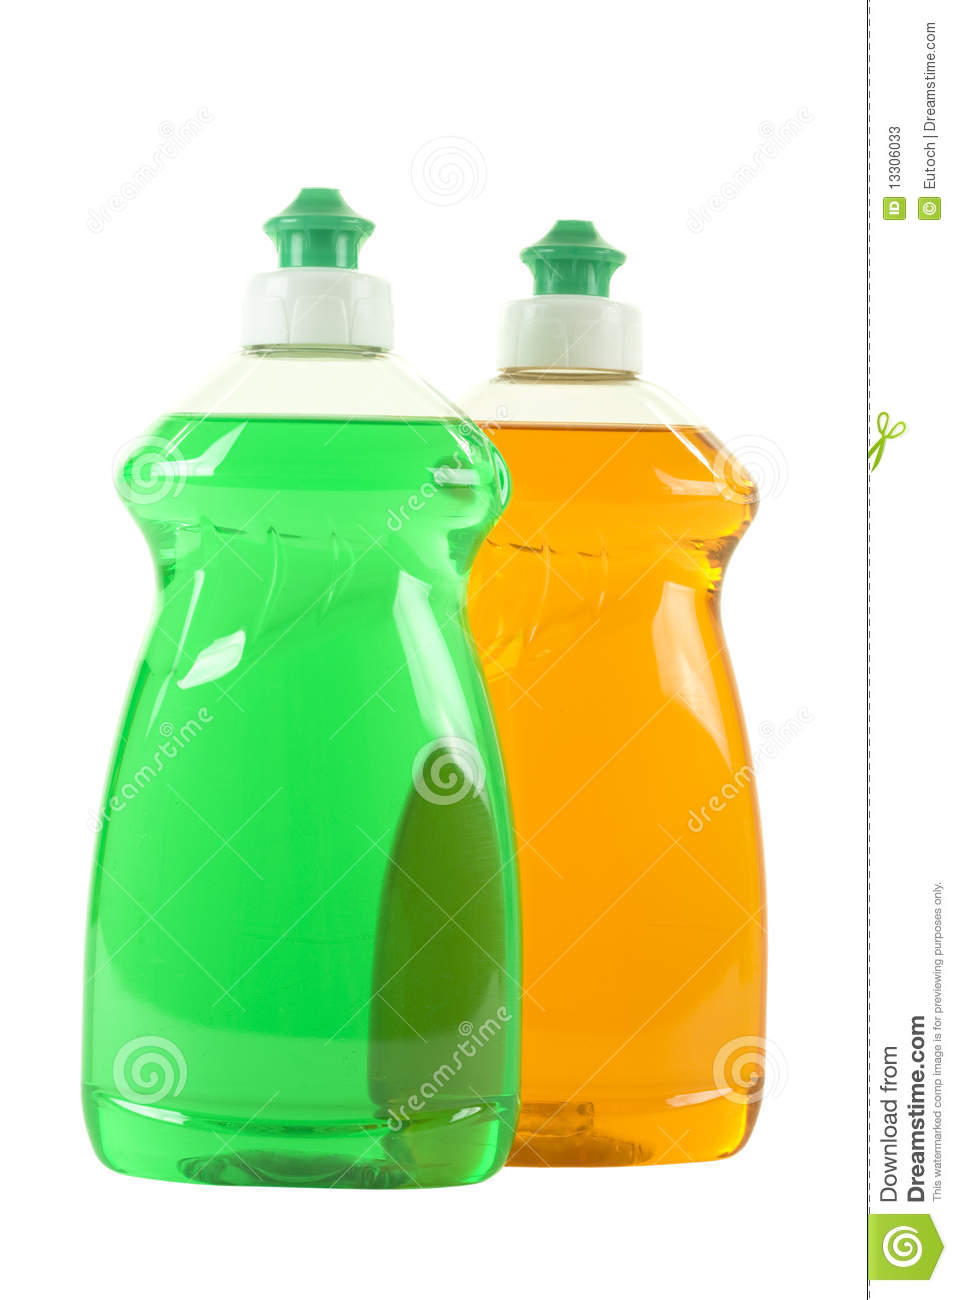 Gallery For > Dish Soap and Sponge Clipart.